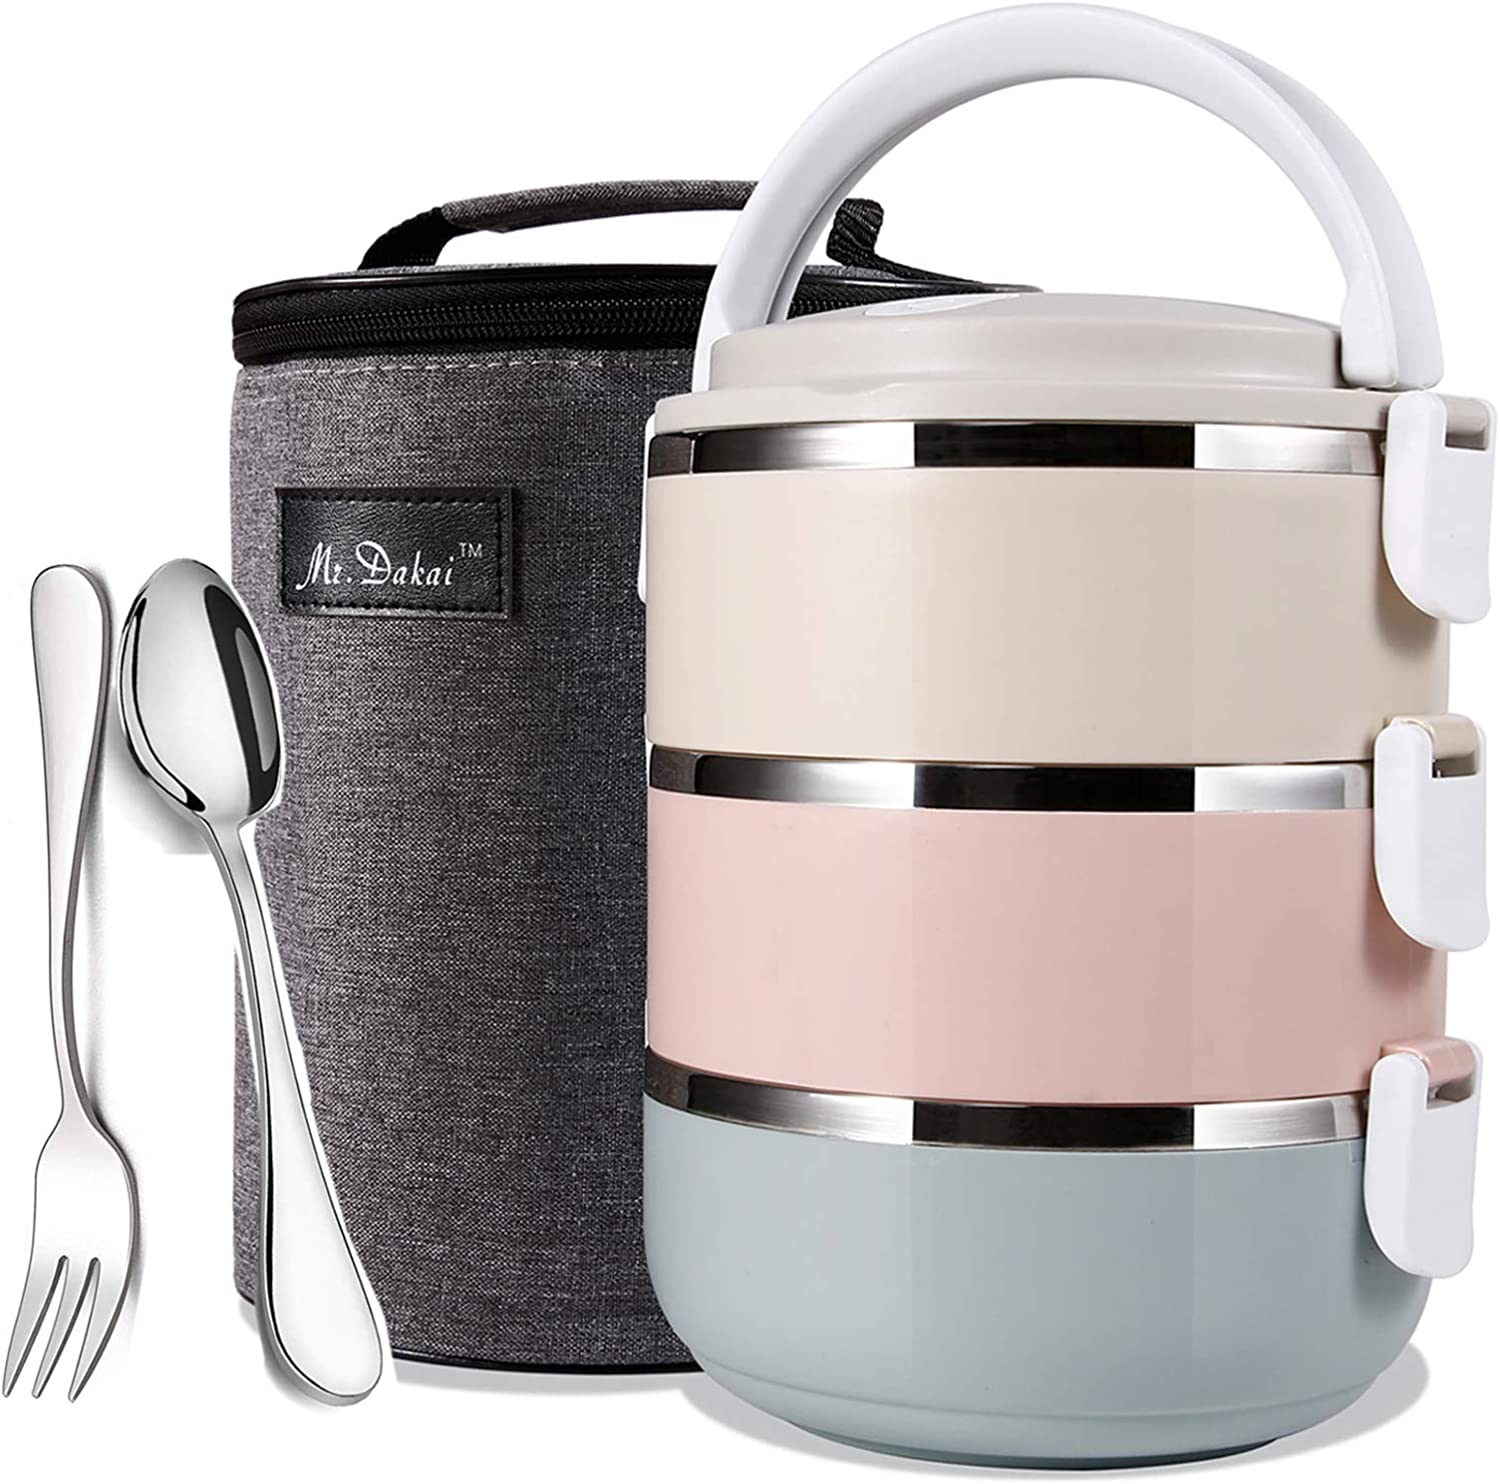 Mr.Dakai Bento Box Adults Lunch Box with Insulated Lunch Bag Spoon Fork, 3-Tier Stainless Steel Stackable Thermal Food Storage Container for Healthy On-the-Go Meal and Snack Packing (Rainbow Round)